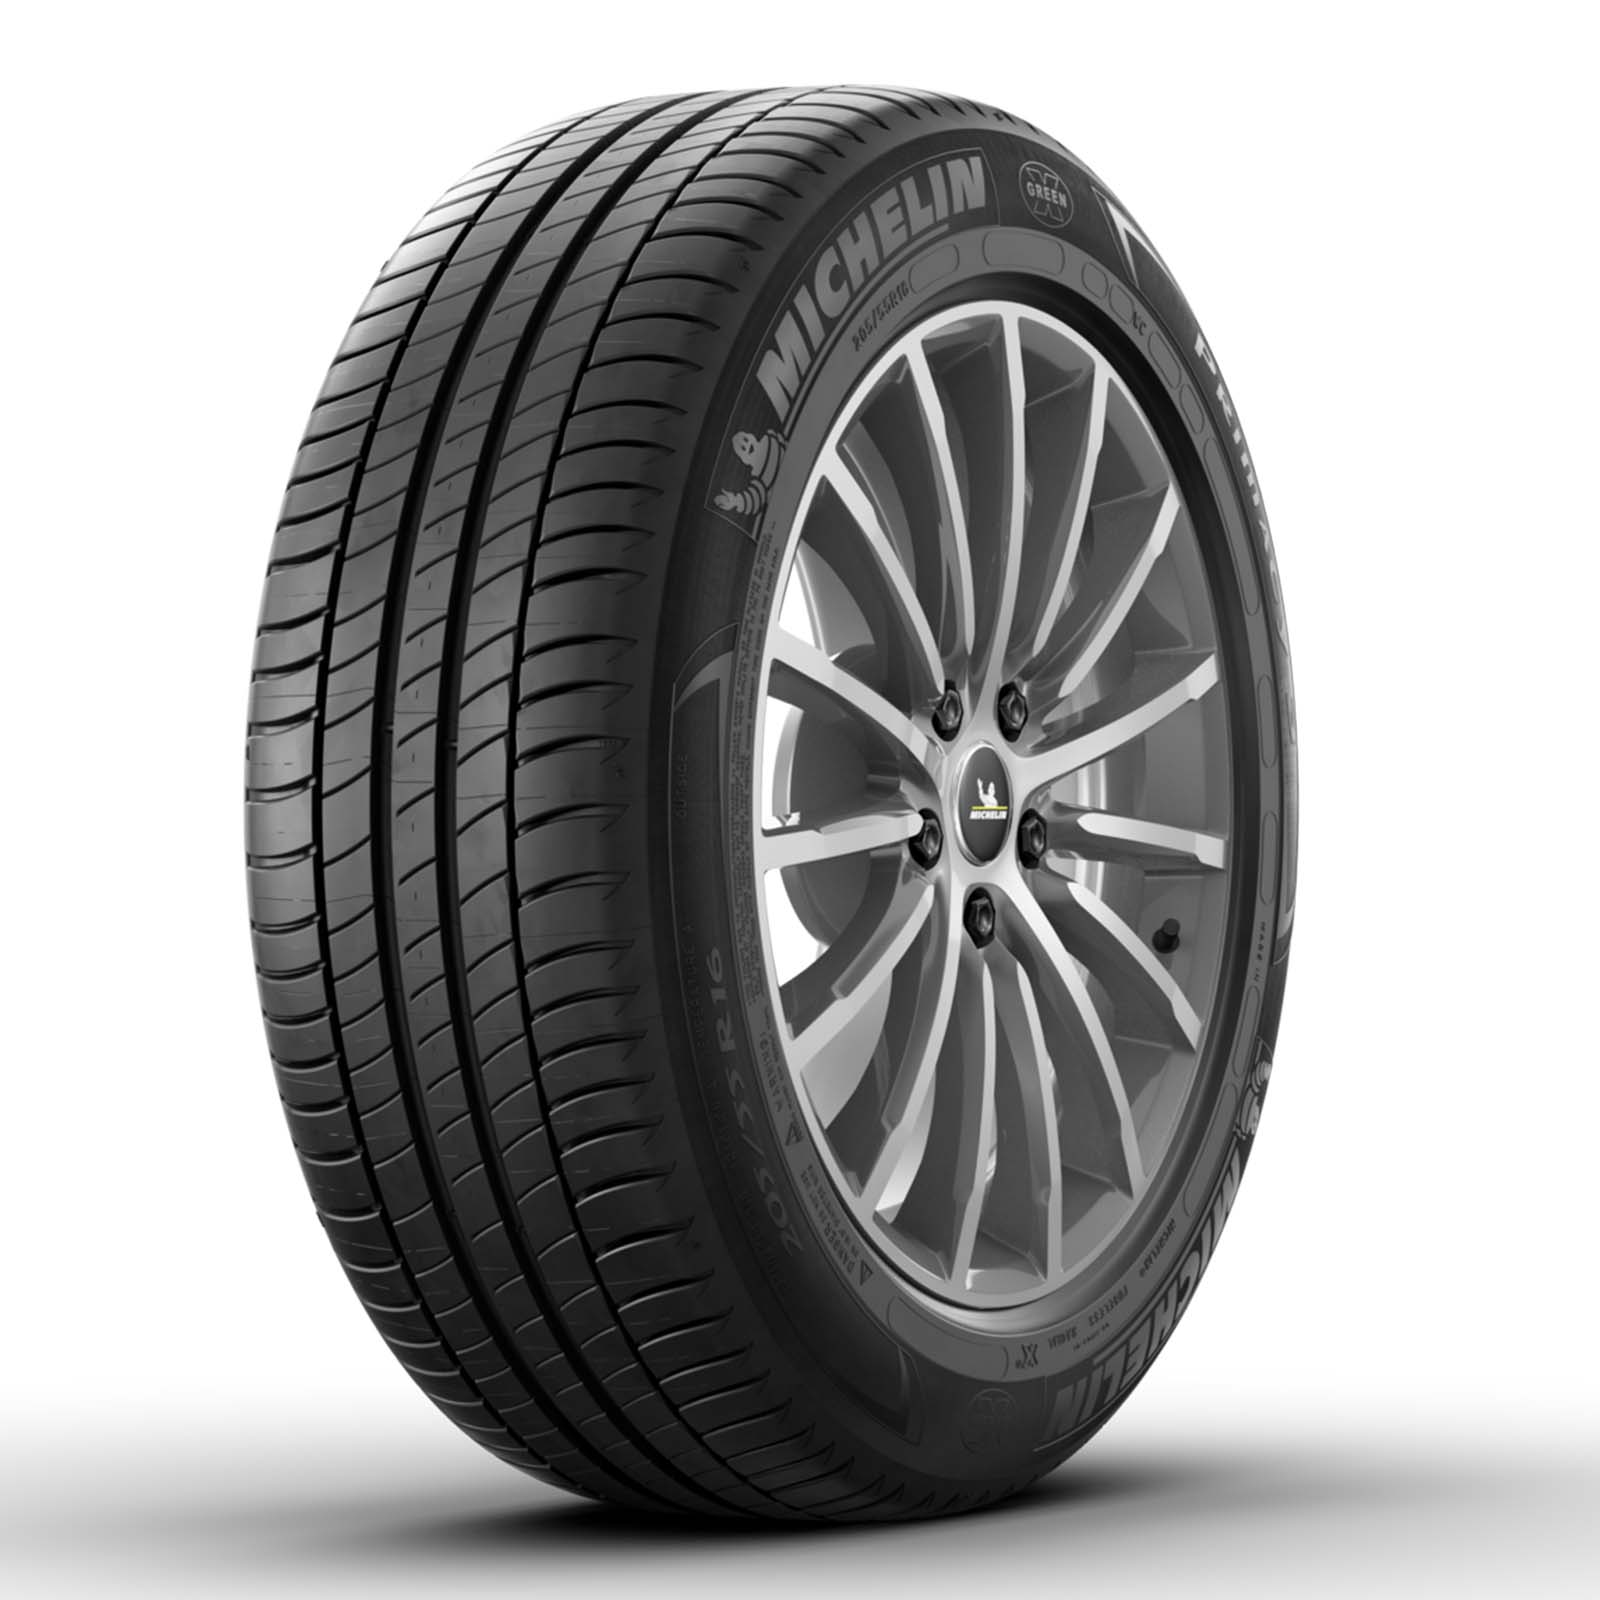 Michelin Primacy 3ZP 245/45 R 19  98 Y Run Flat Car Tyre